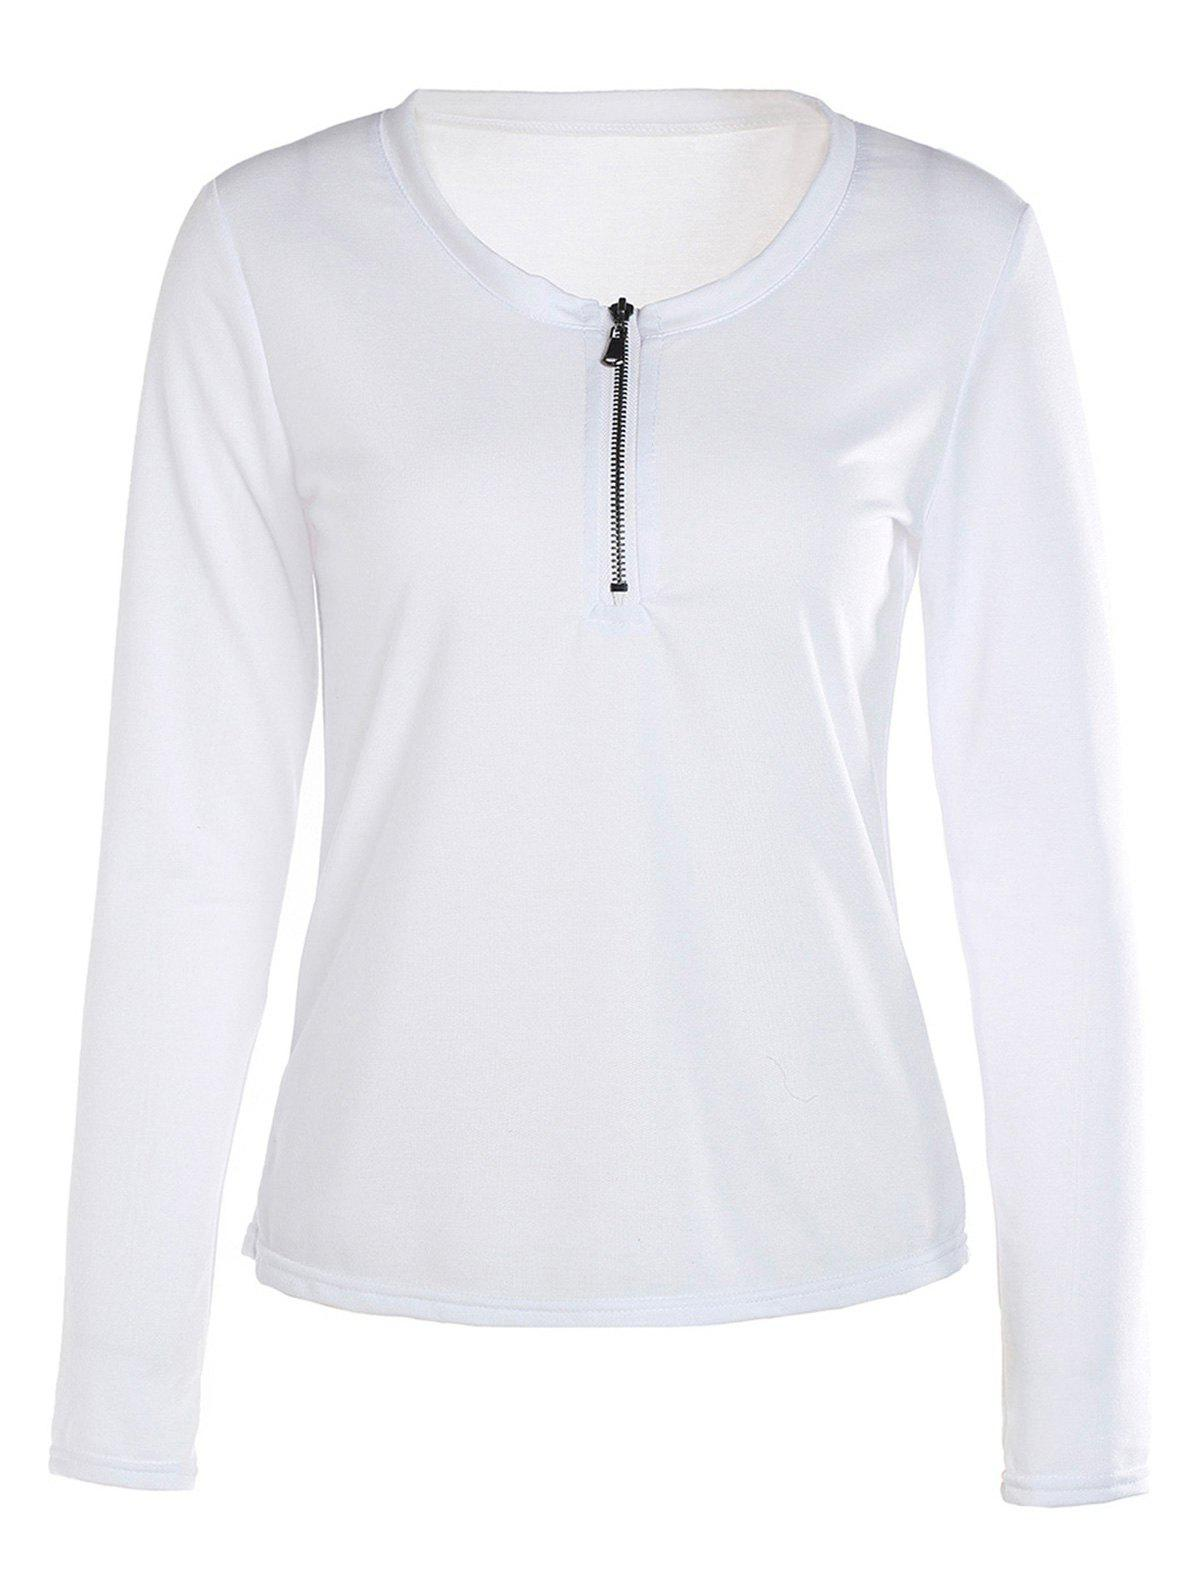 Hot Trendy White Scoop Neck Zippered Long Sleeve T-Shirt For Women